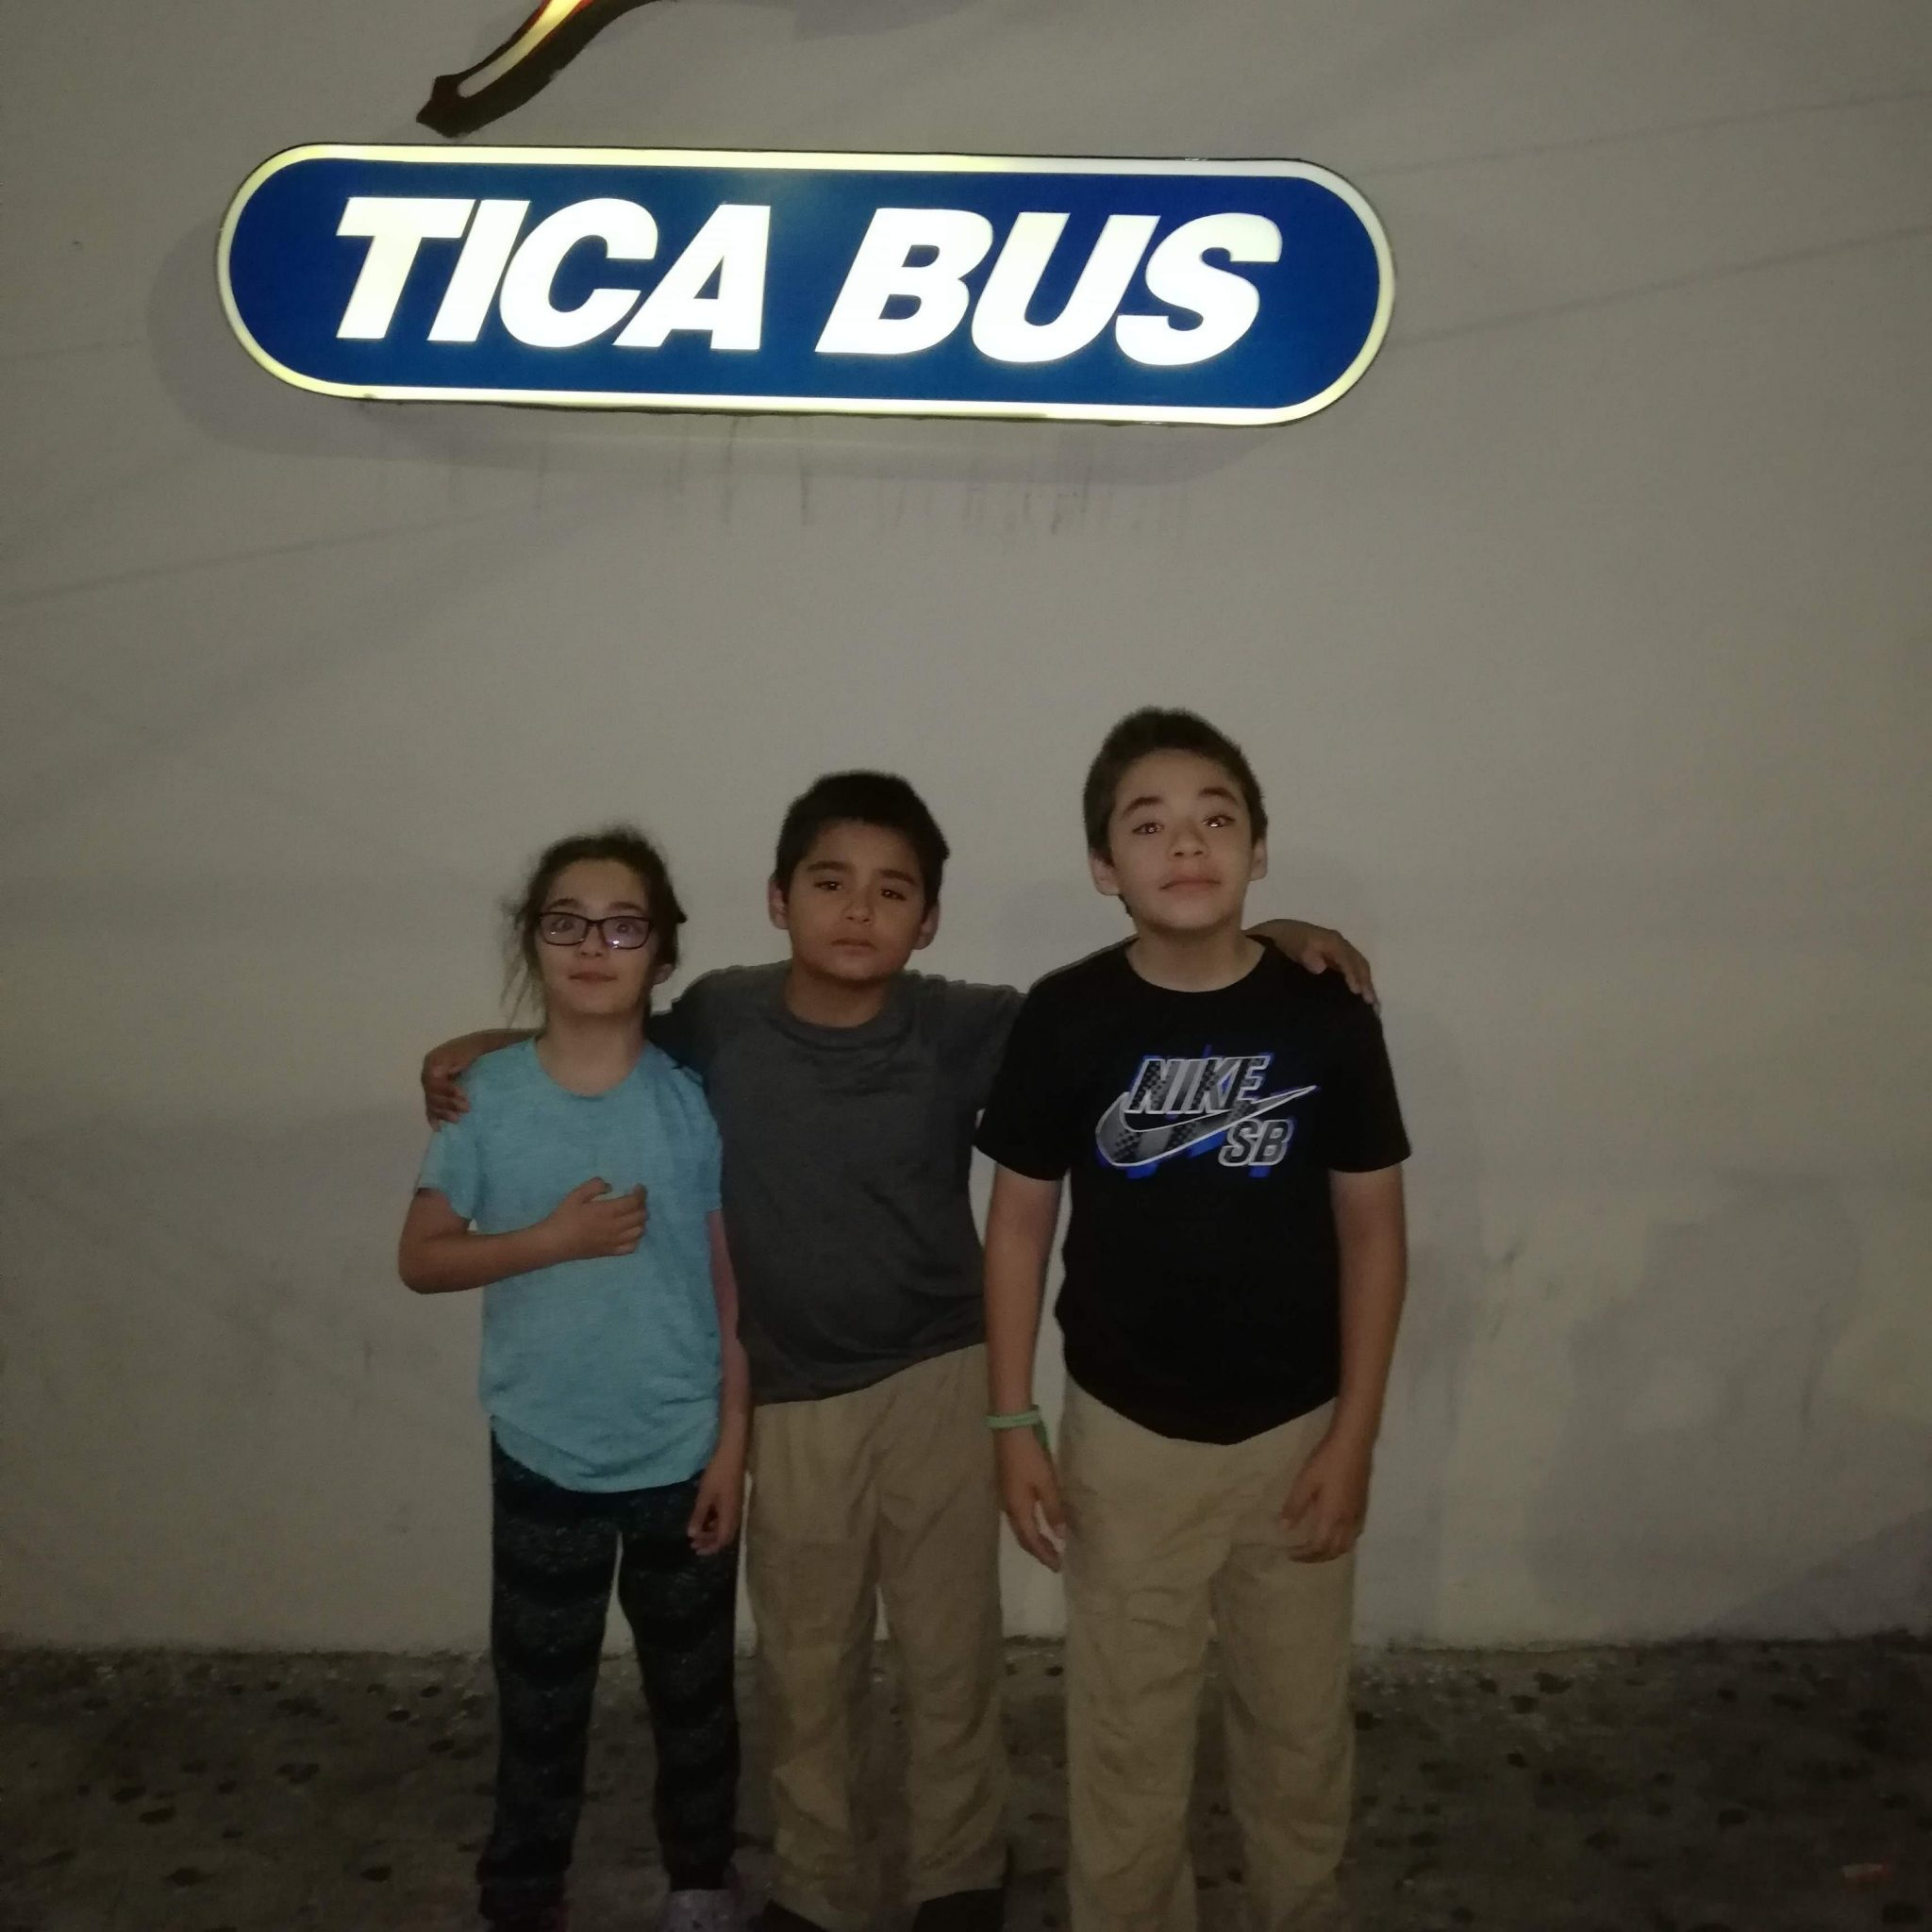 Daniela, Mateo and Marco waiting for the night Tica Bus